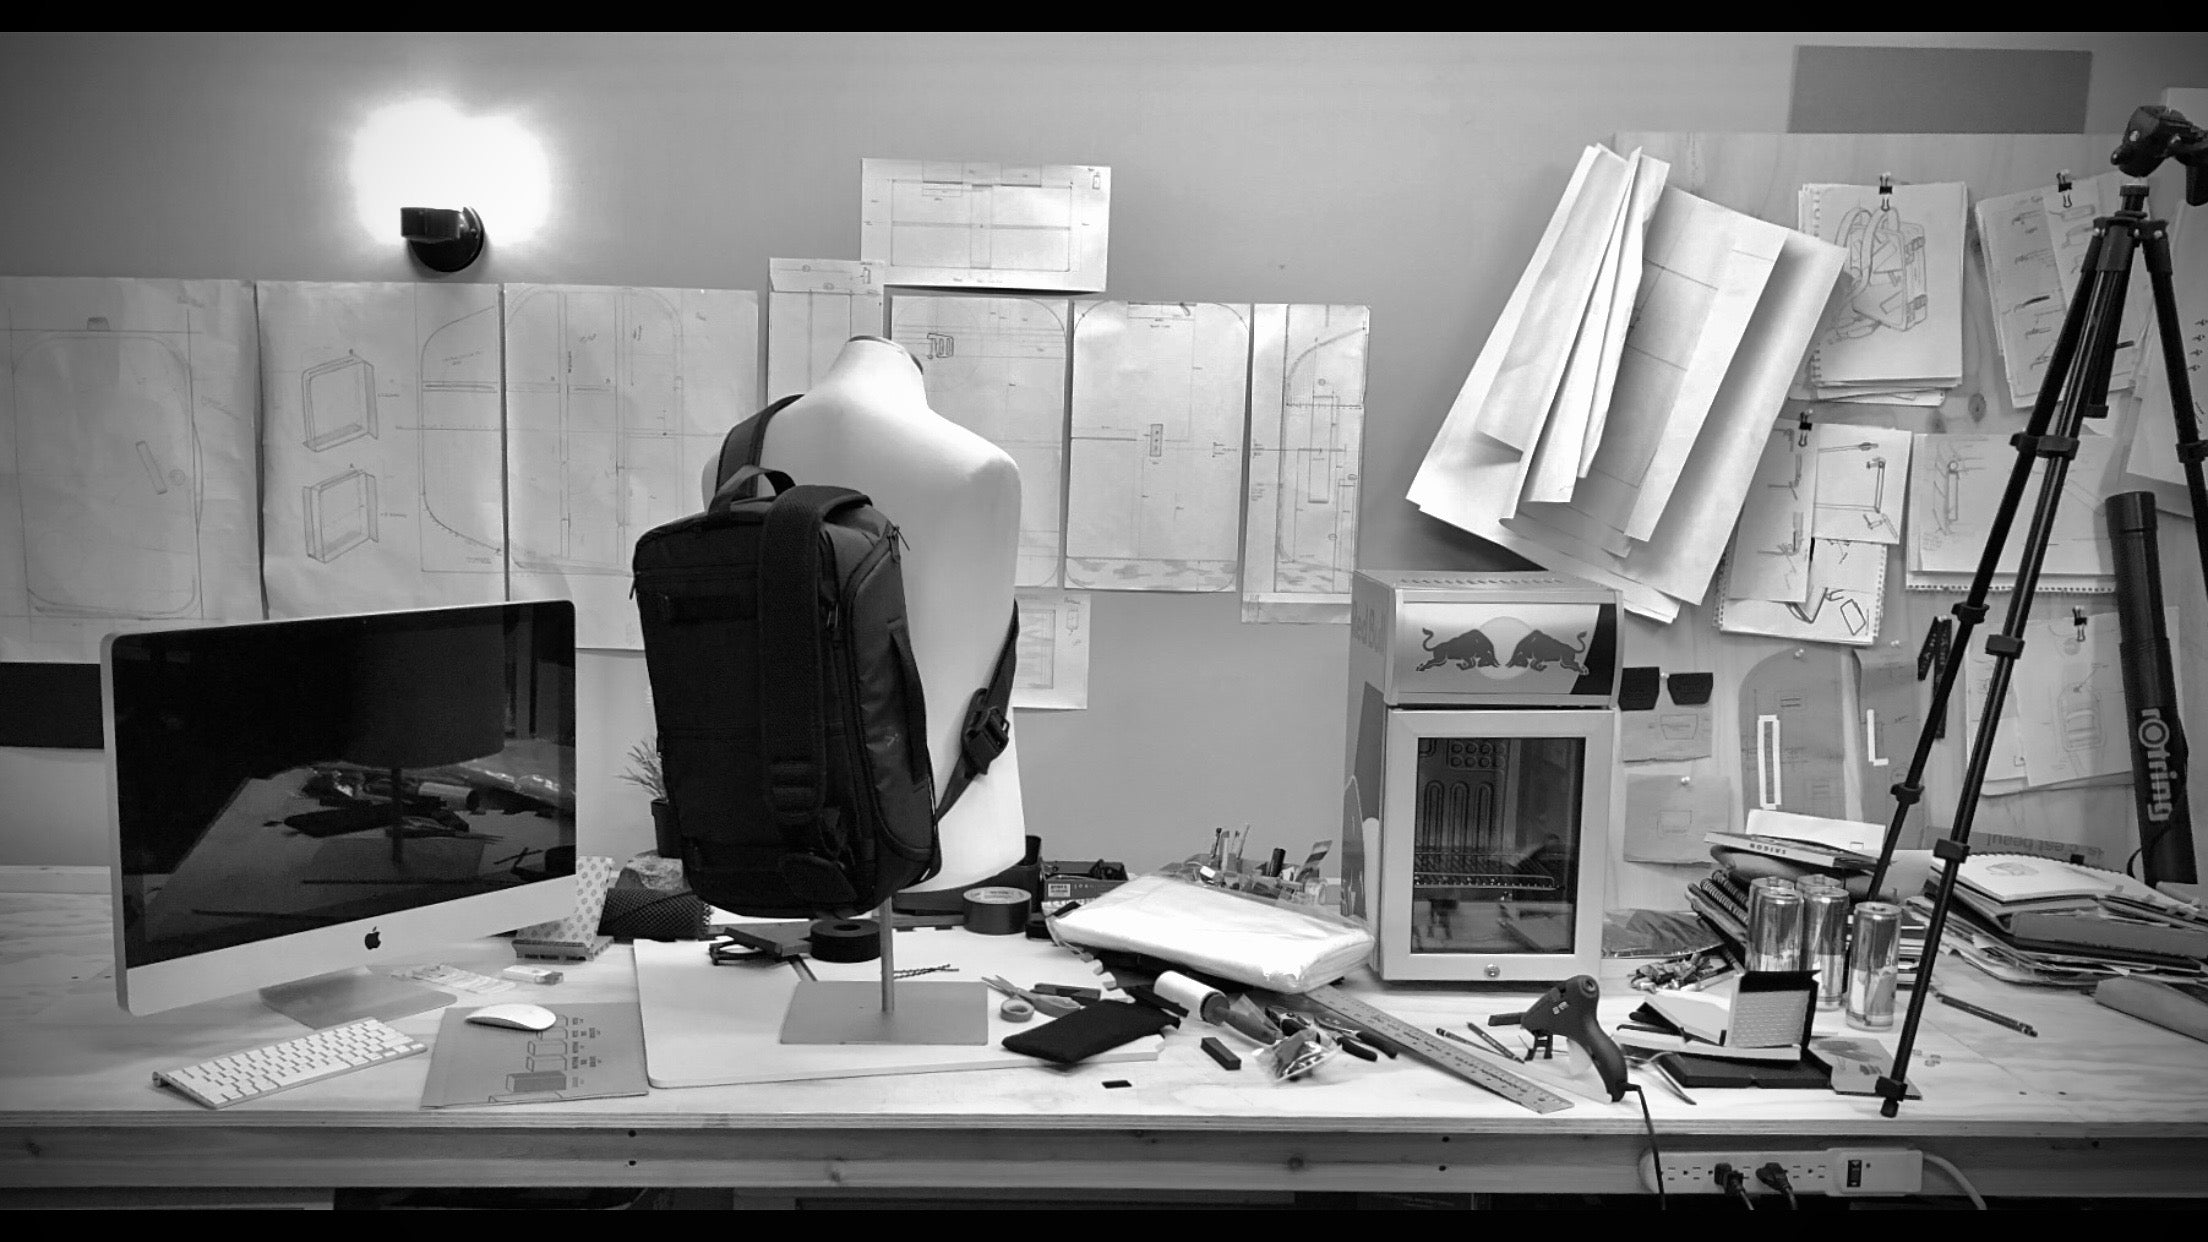 inside office space with camera bag designs, prototype, desktop computer and camera tripod on desk